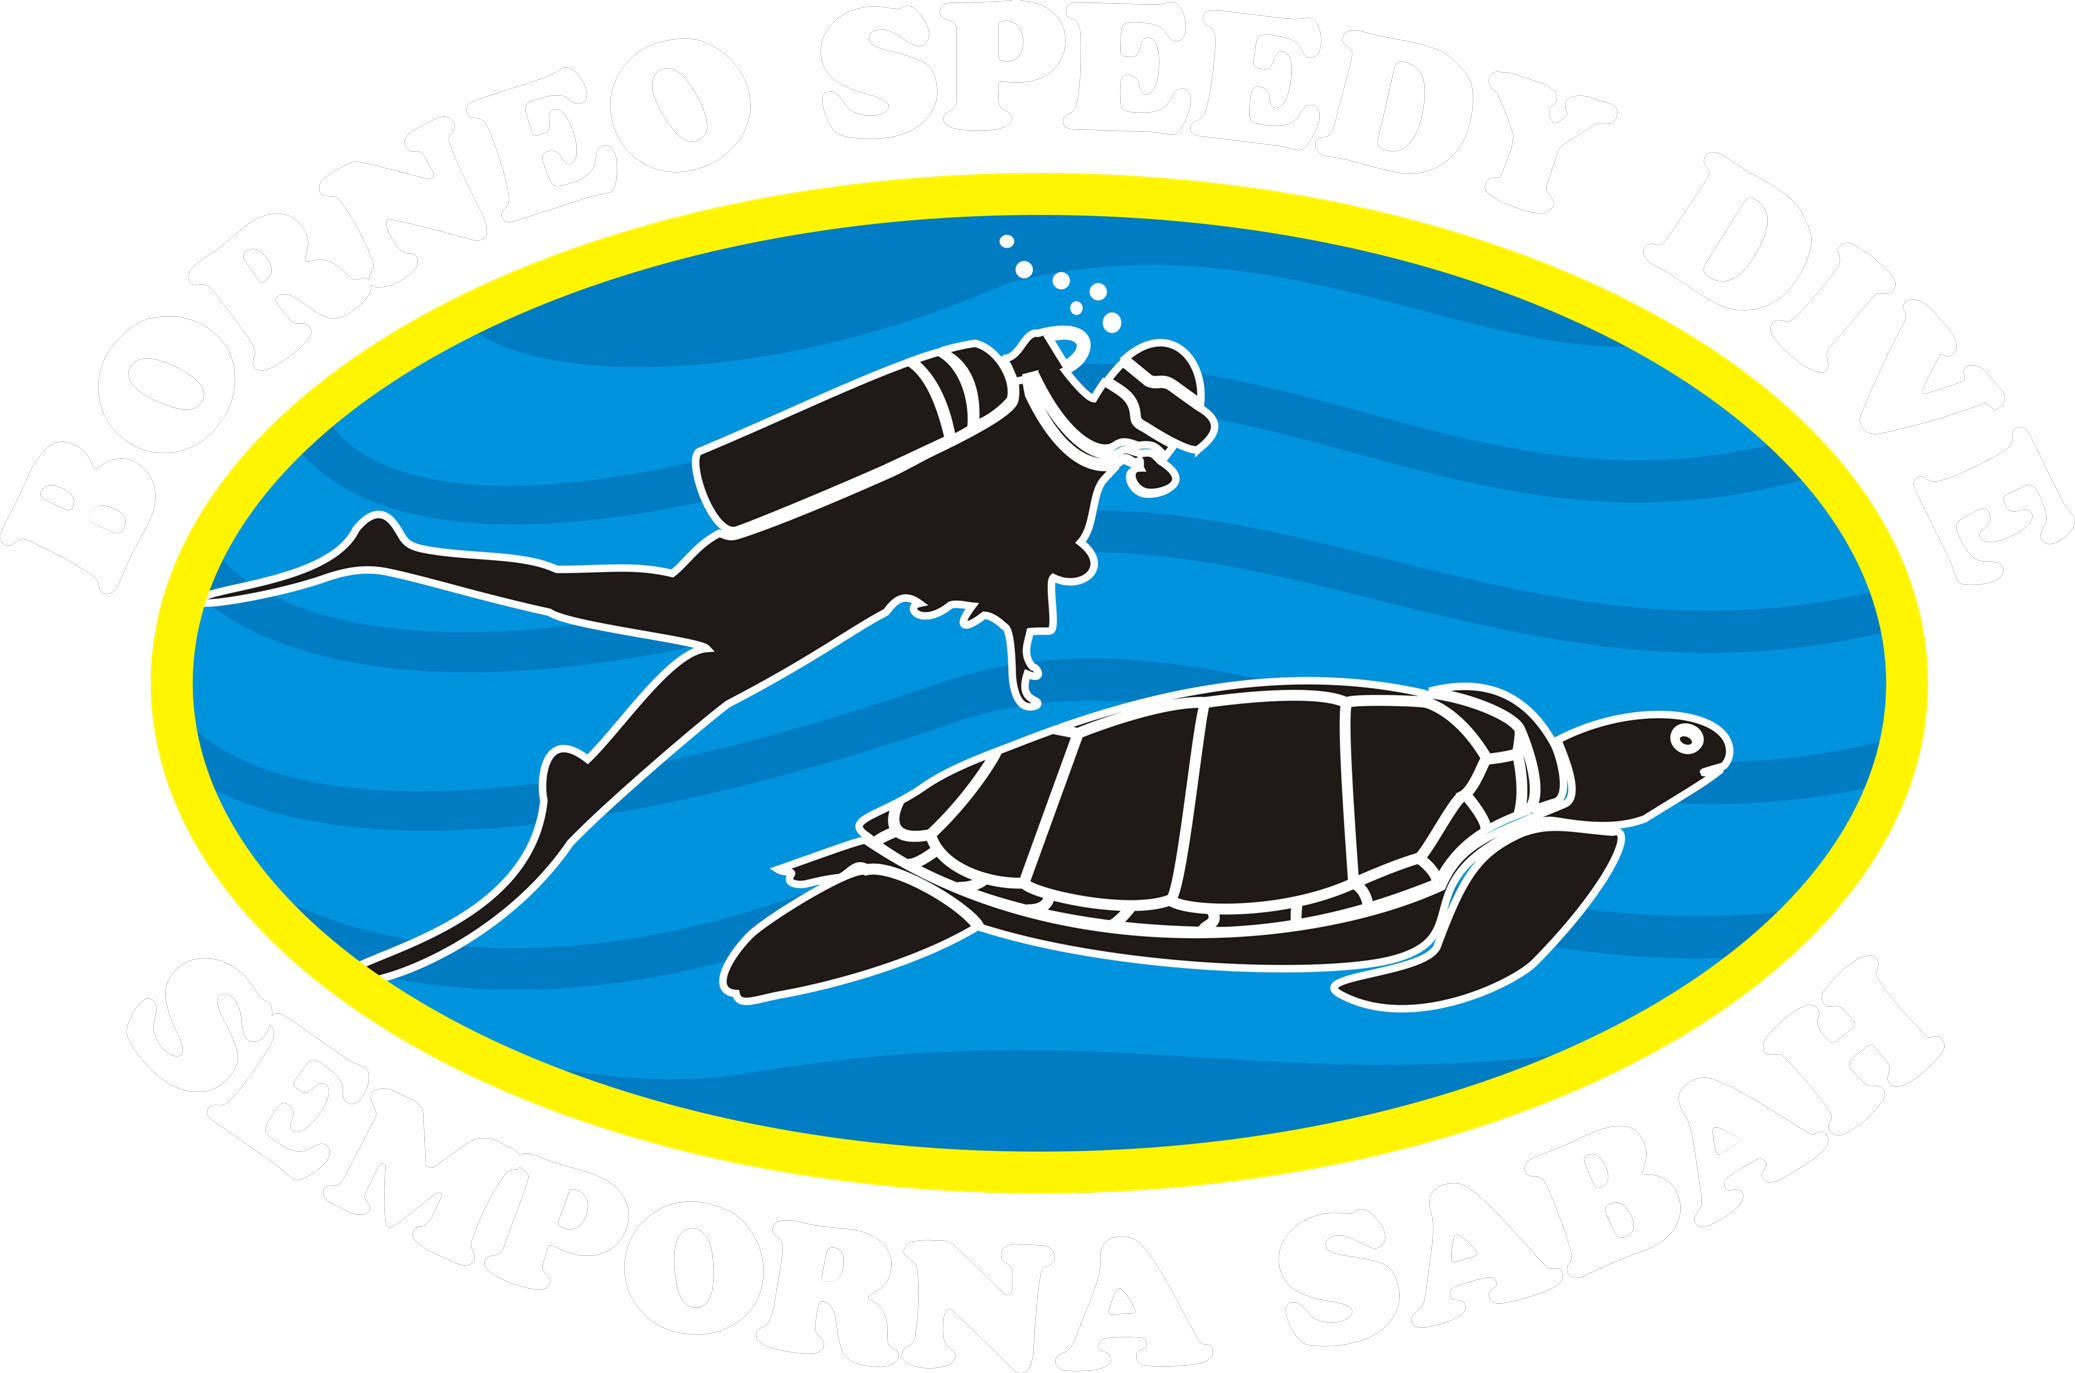 Diver clipart diving block. Logo of borneo speedy